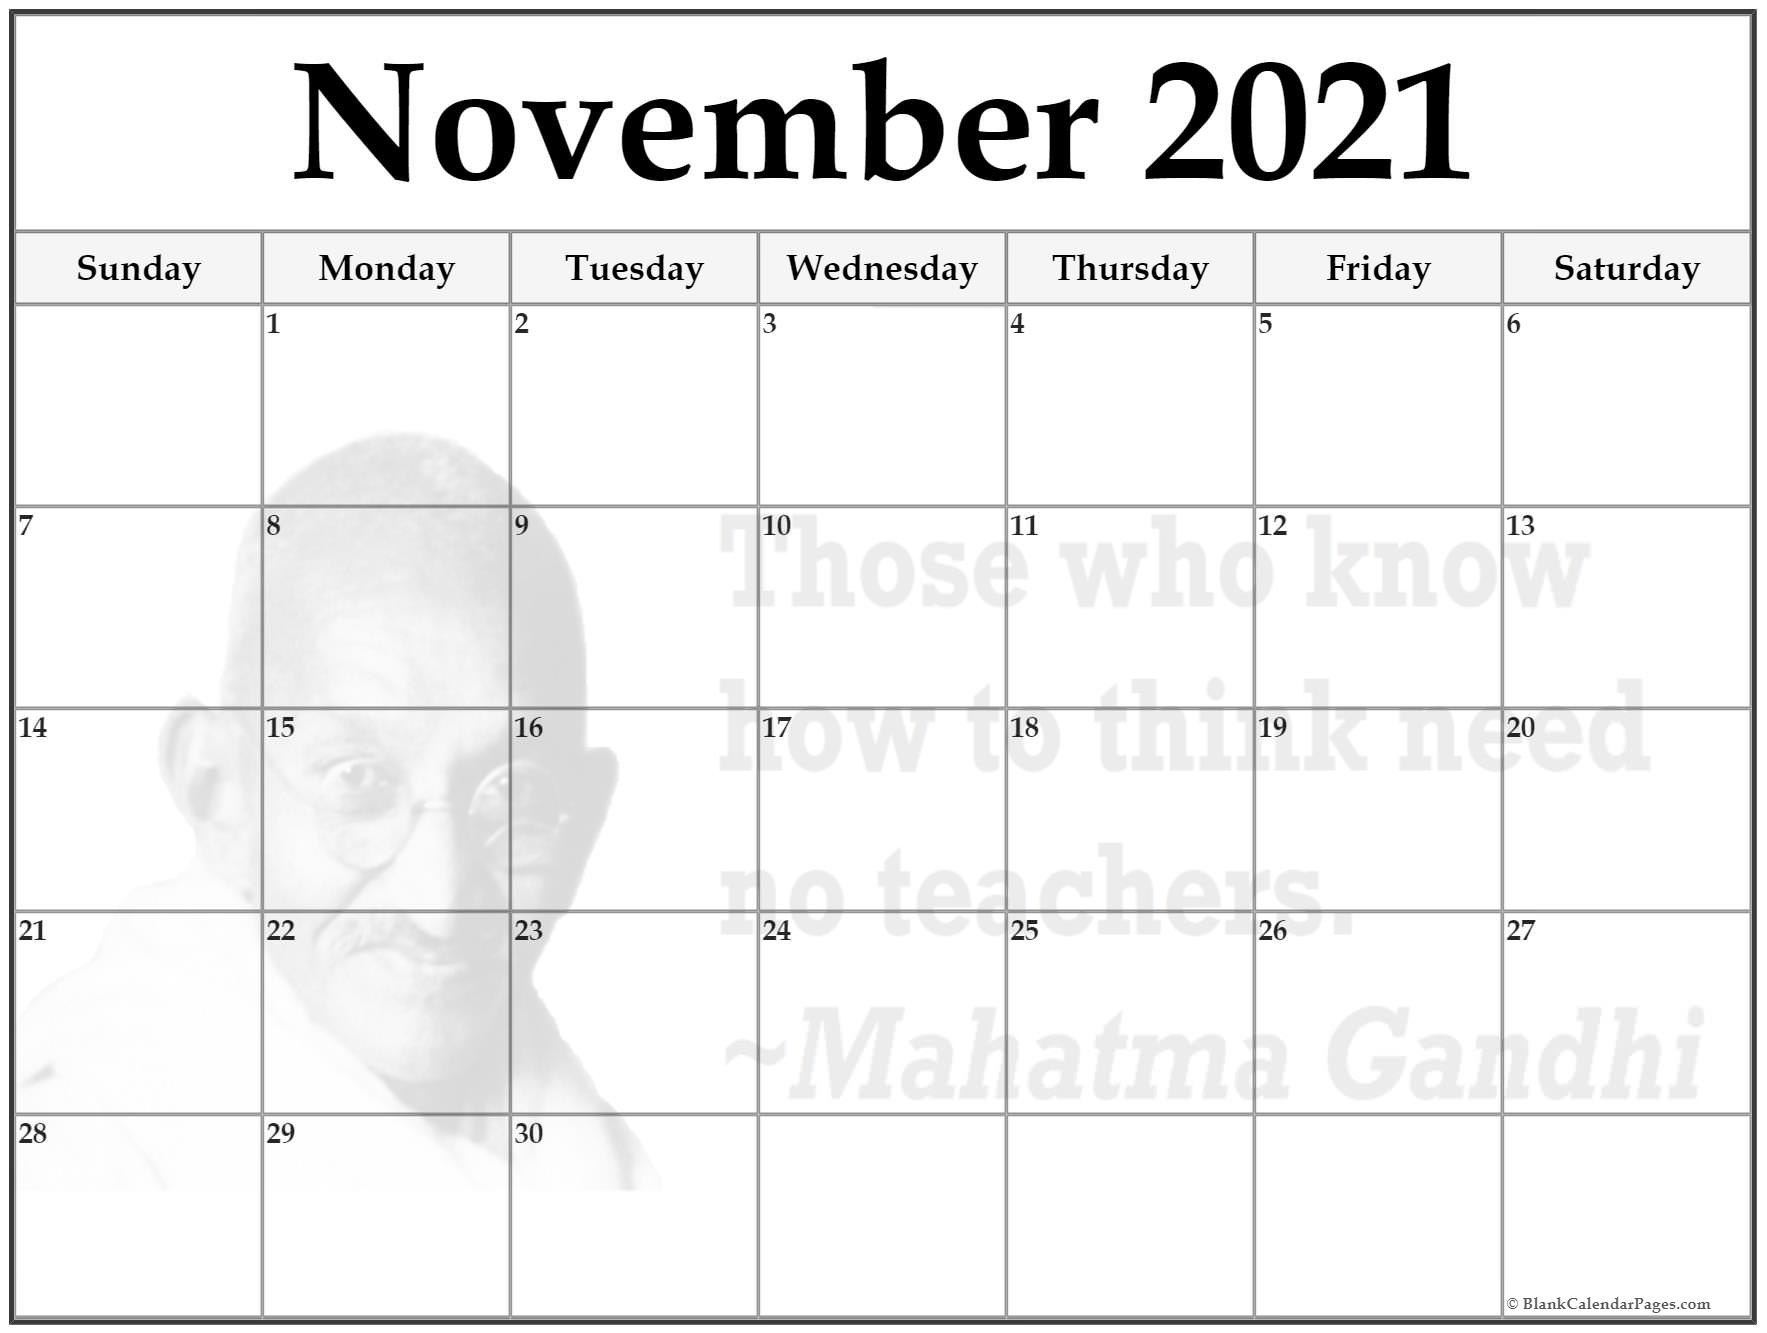 November 2020 monthly calendar template. Those who know how to think need no teachers. ~Mahatma Gandhi